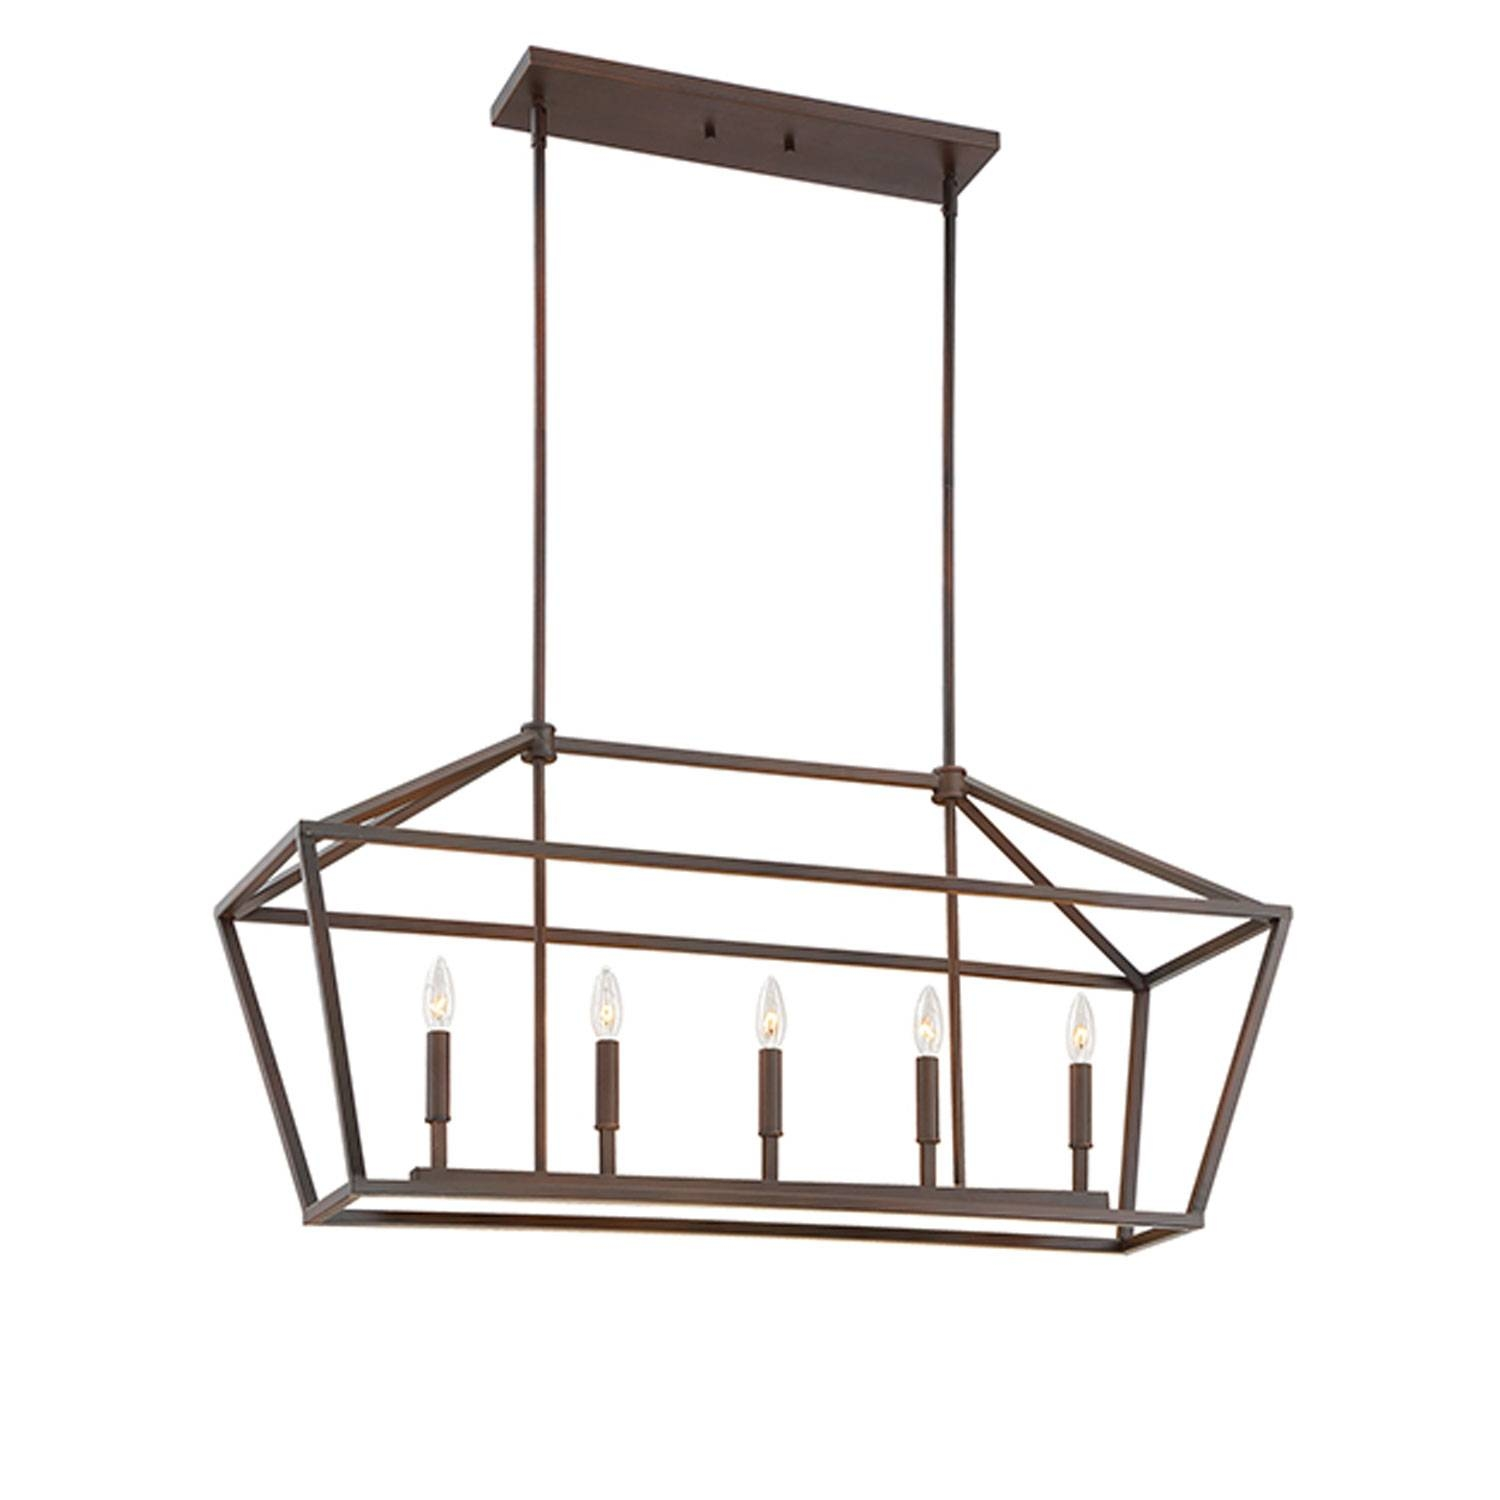 Pendant Lighting | Kitchen, Modern, Contemporary & More On Sale In Rectangular Pendant Lights (View 13 of 15)